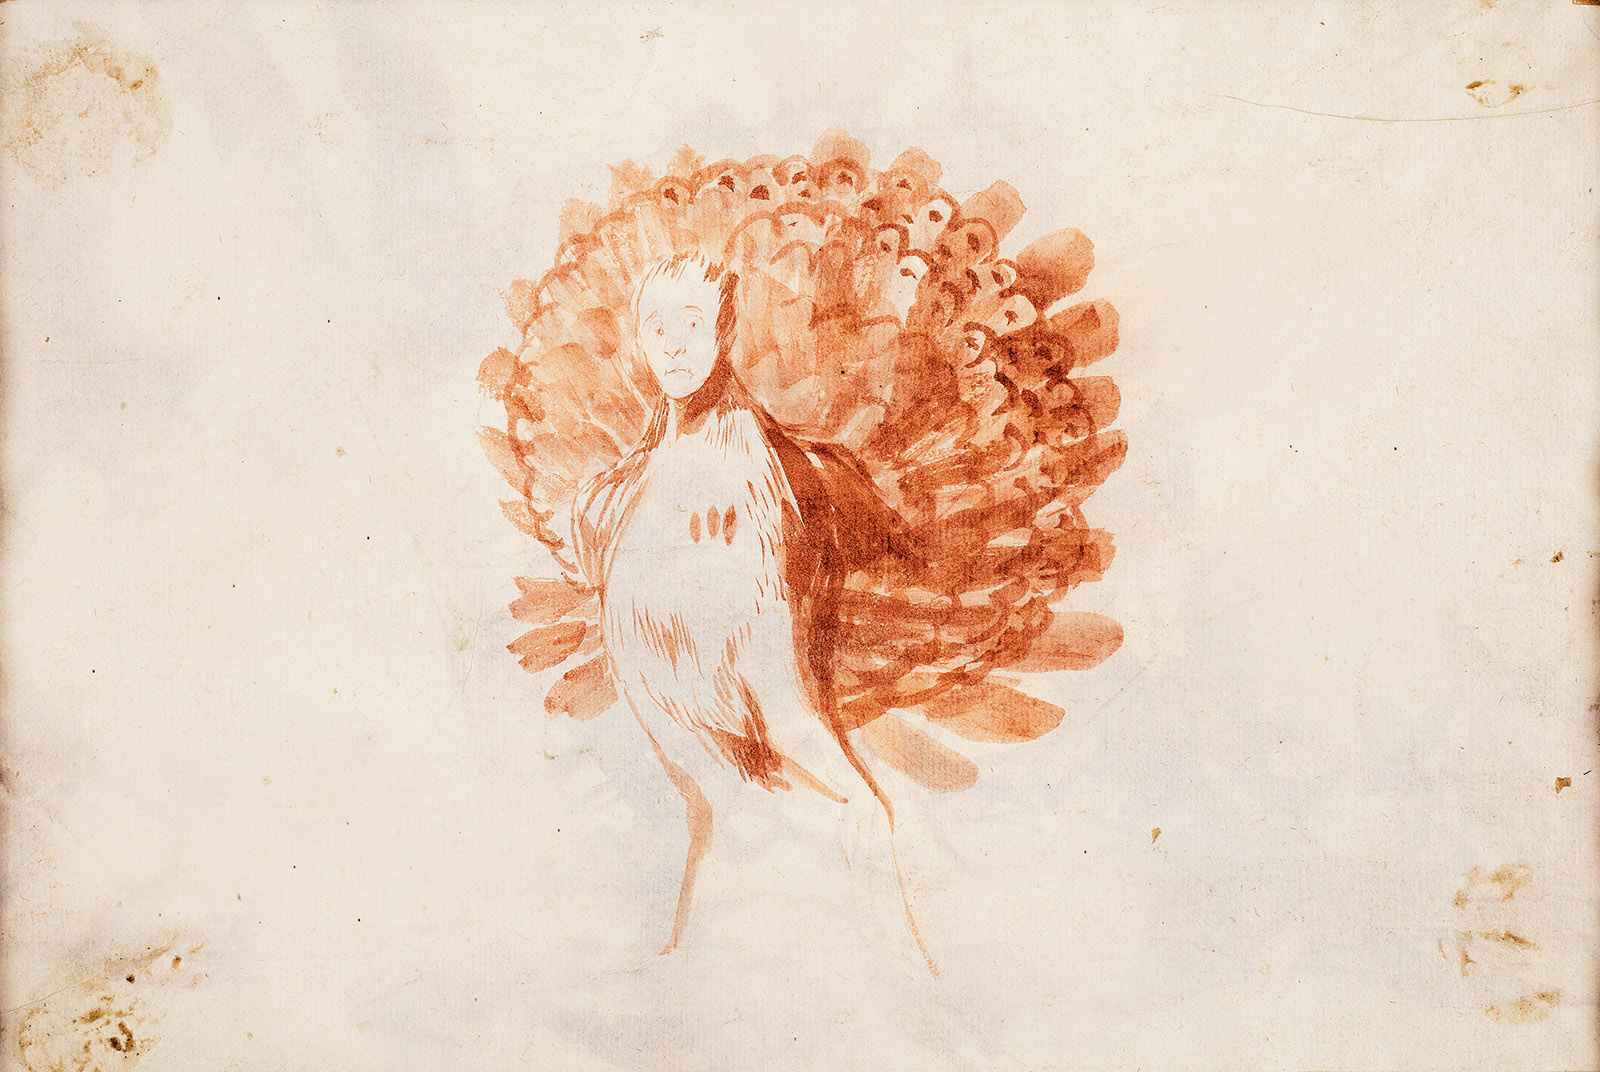 The Vain Peacock; painting by Francisco Goya